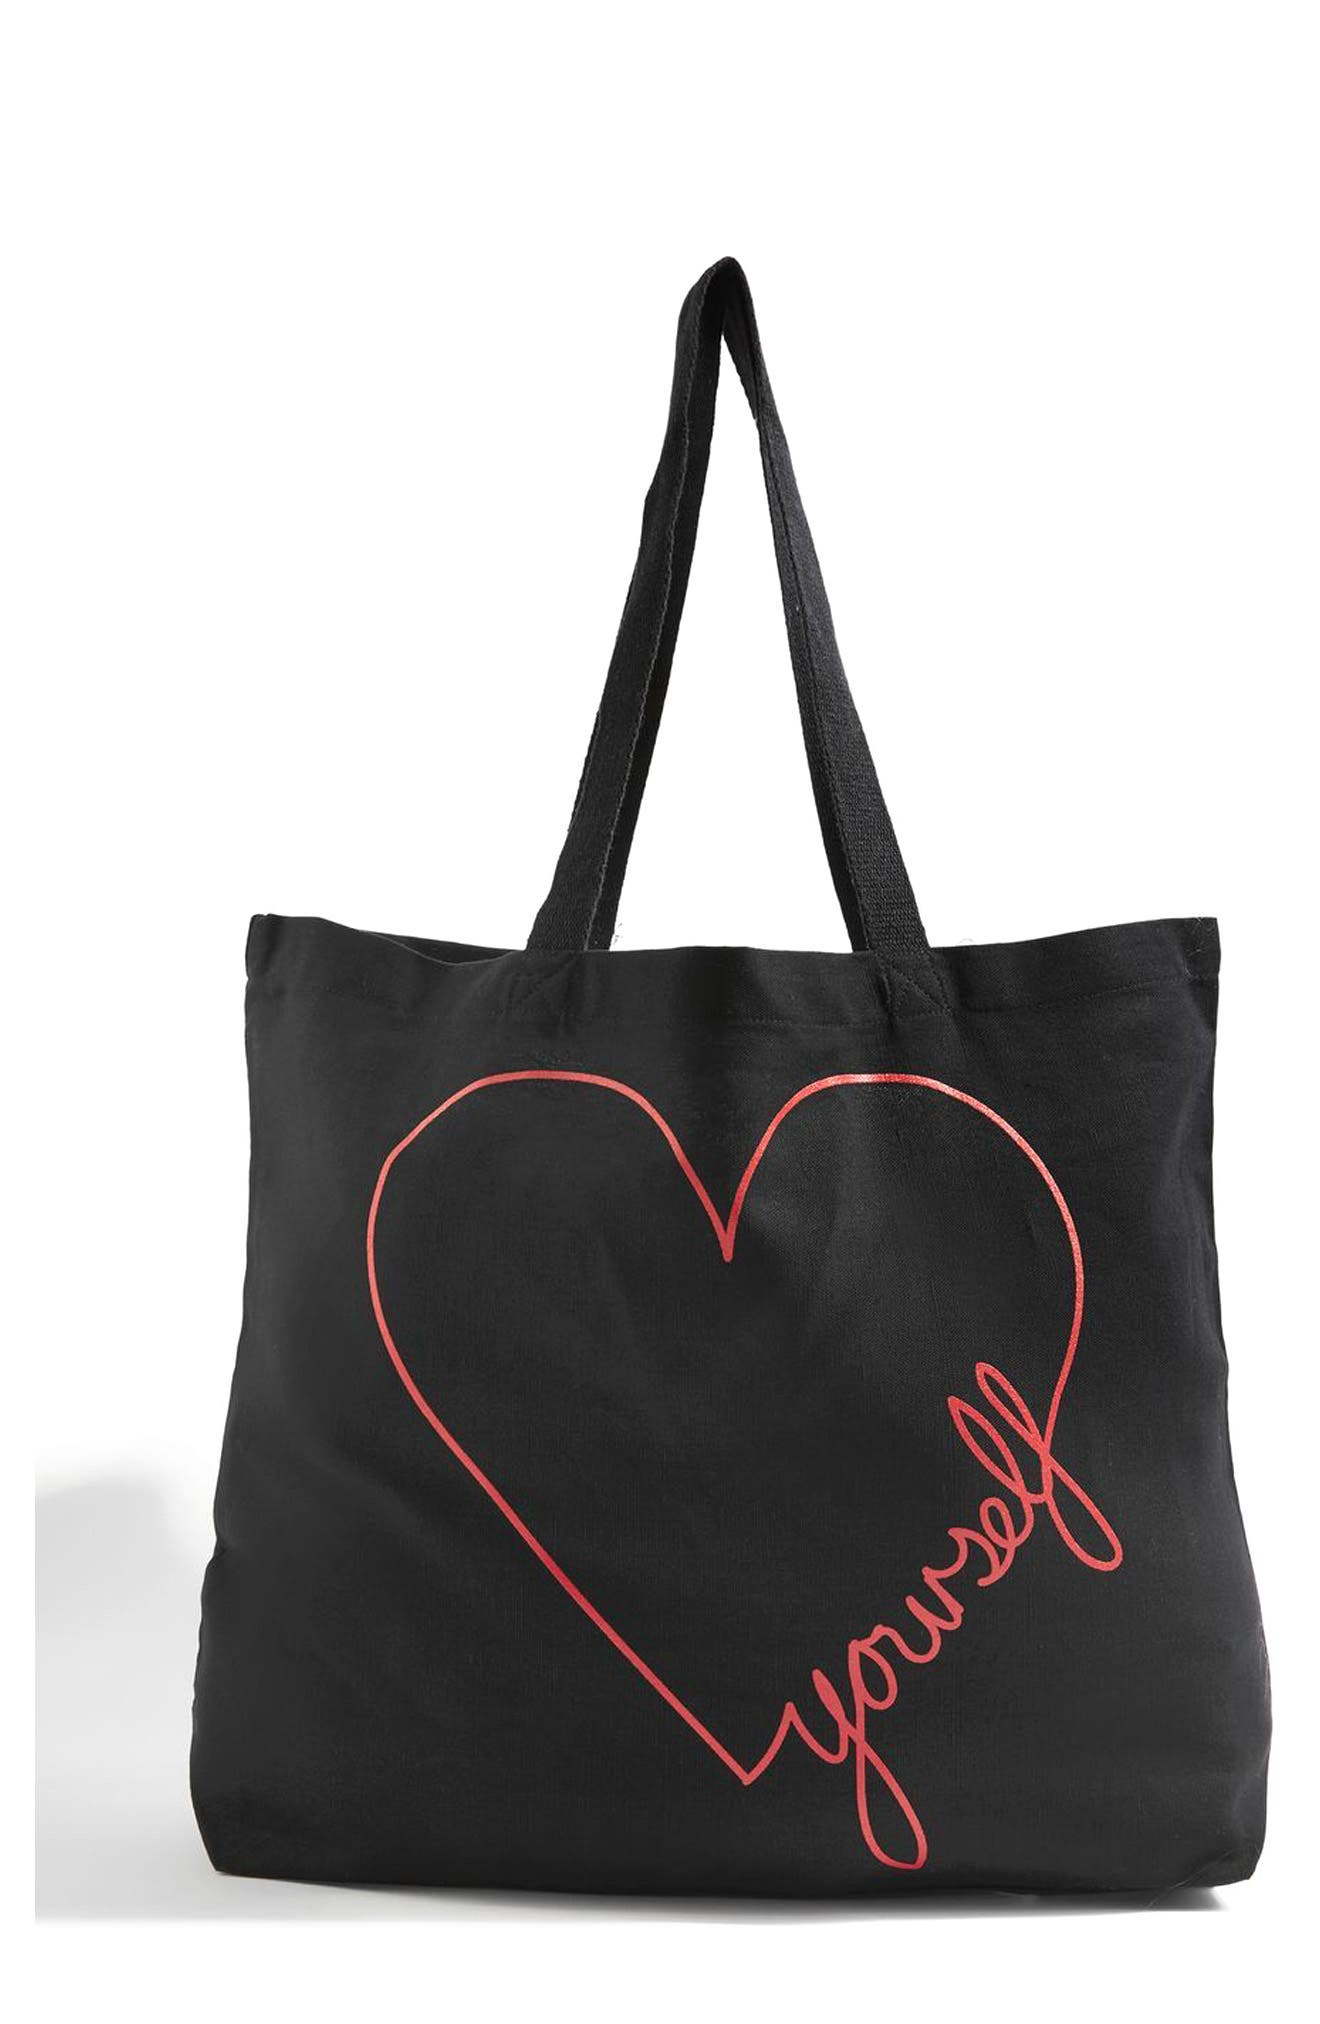 Topshop Love Yourself Canvas Tote Bag